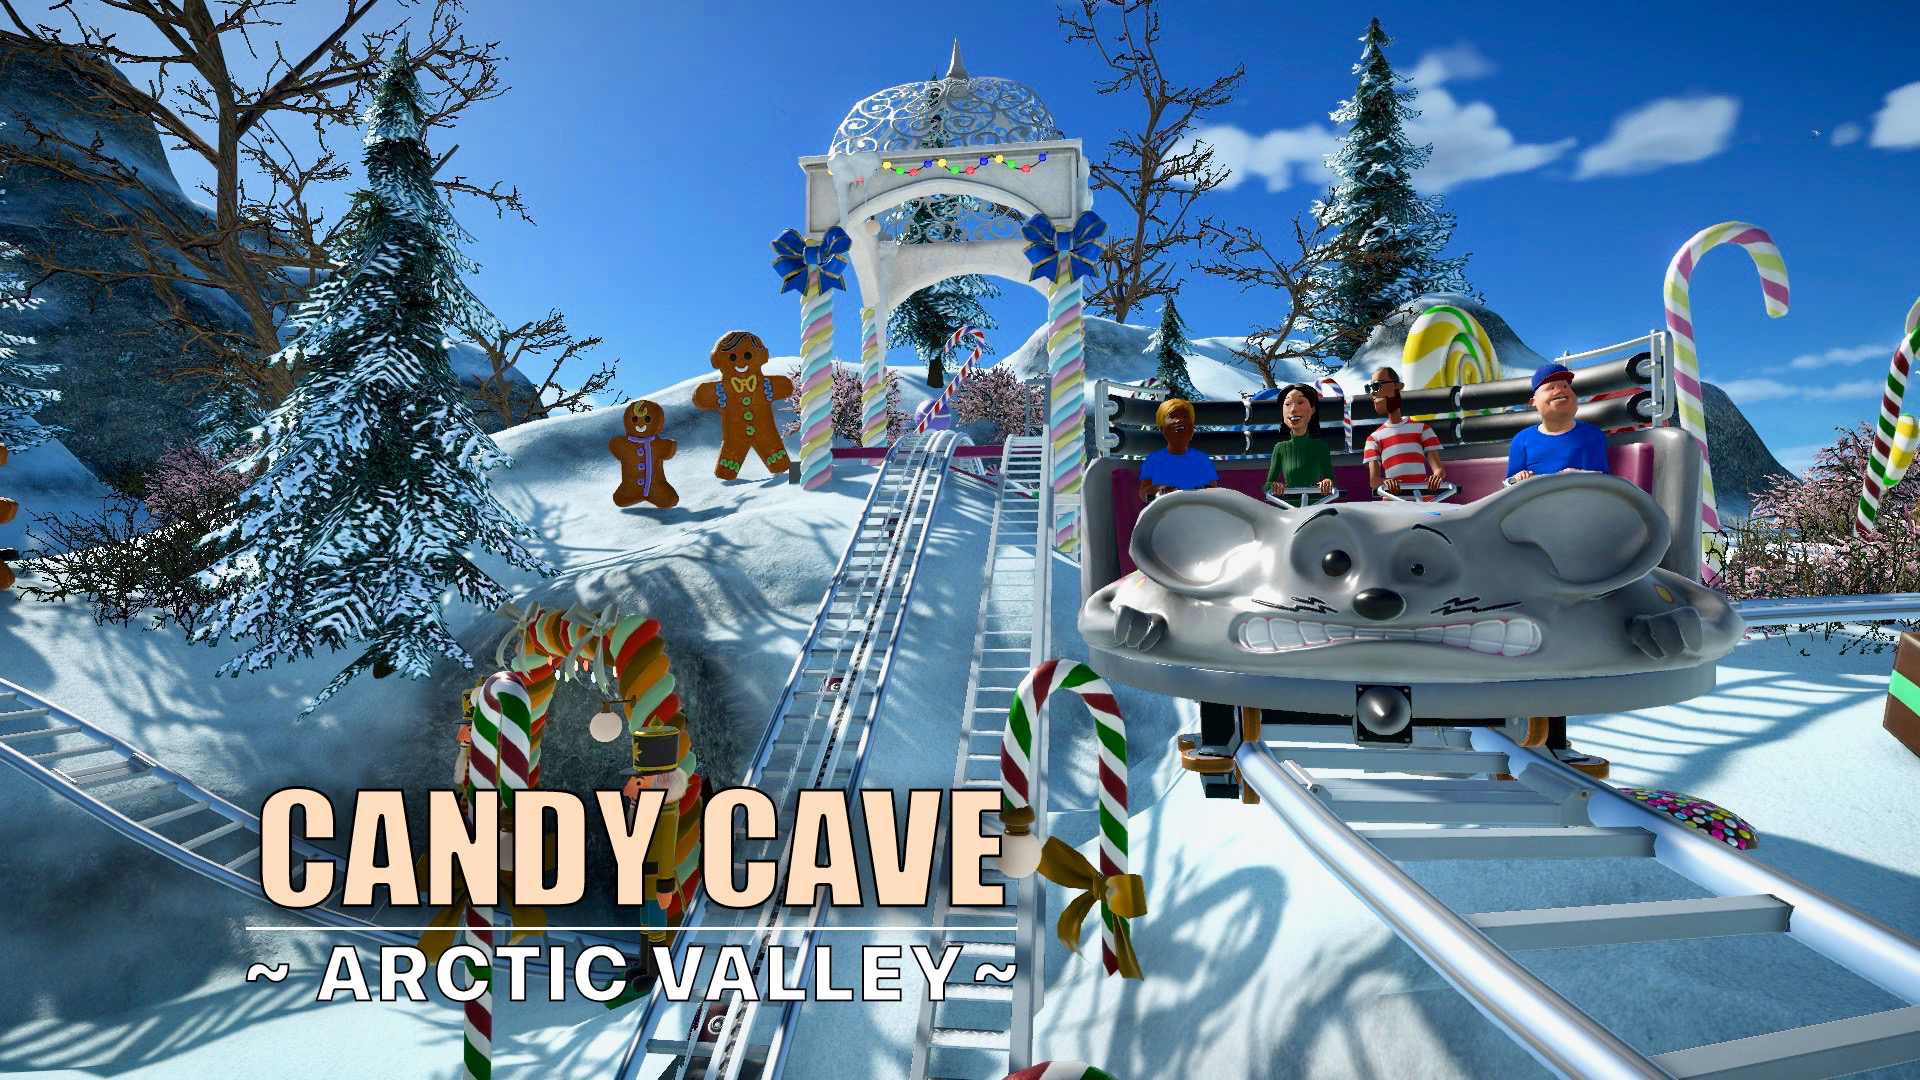 Candy Cave coaster